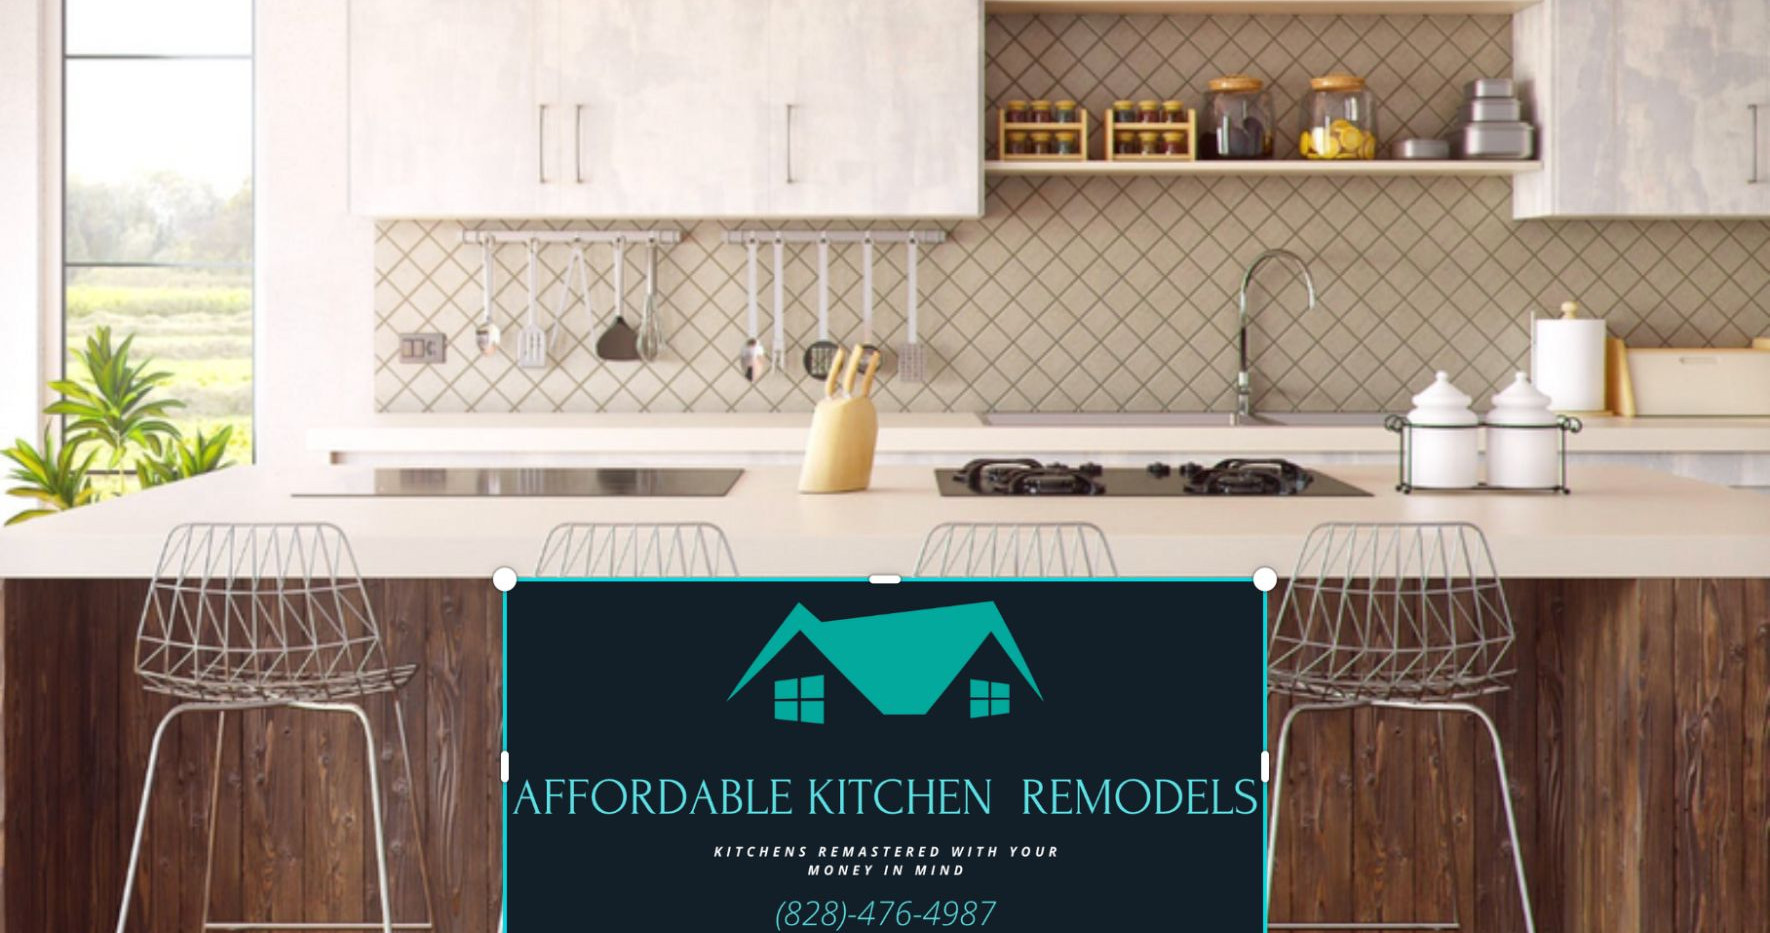 Kitchen Affordable Remodel.jpg